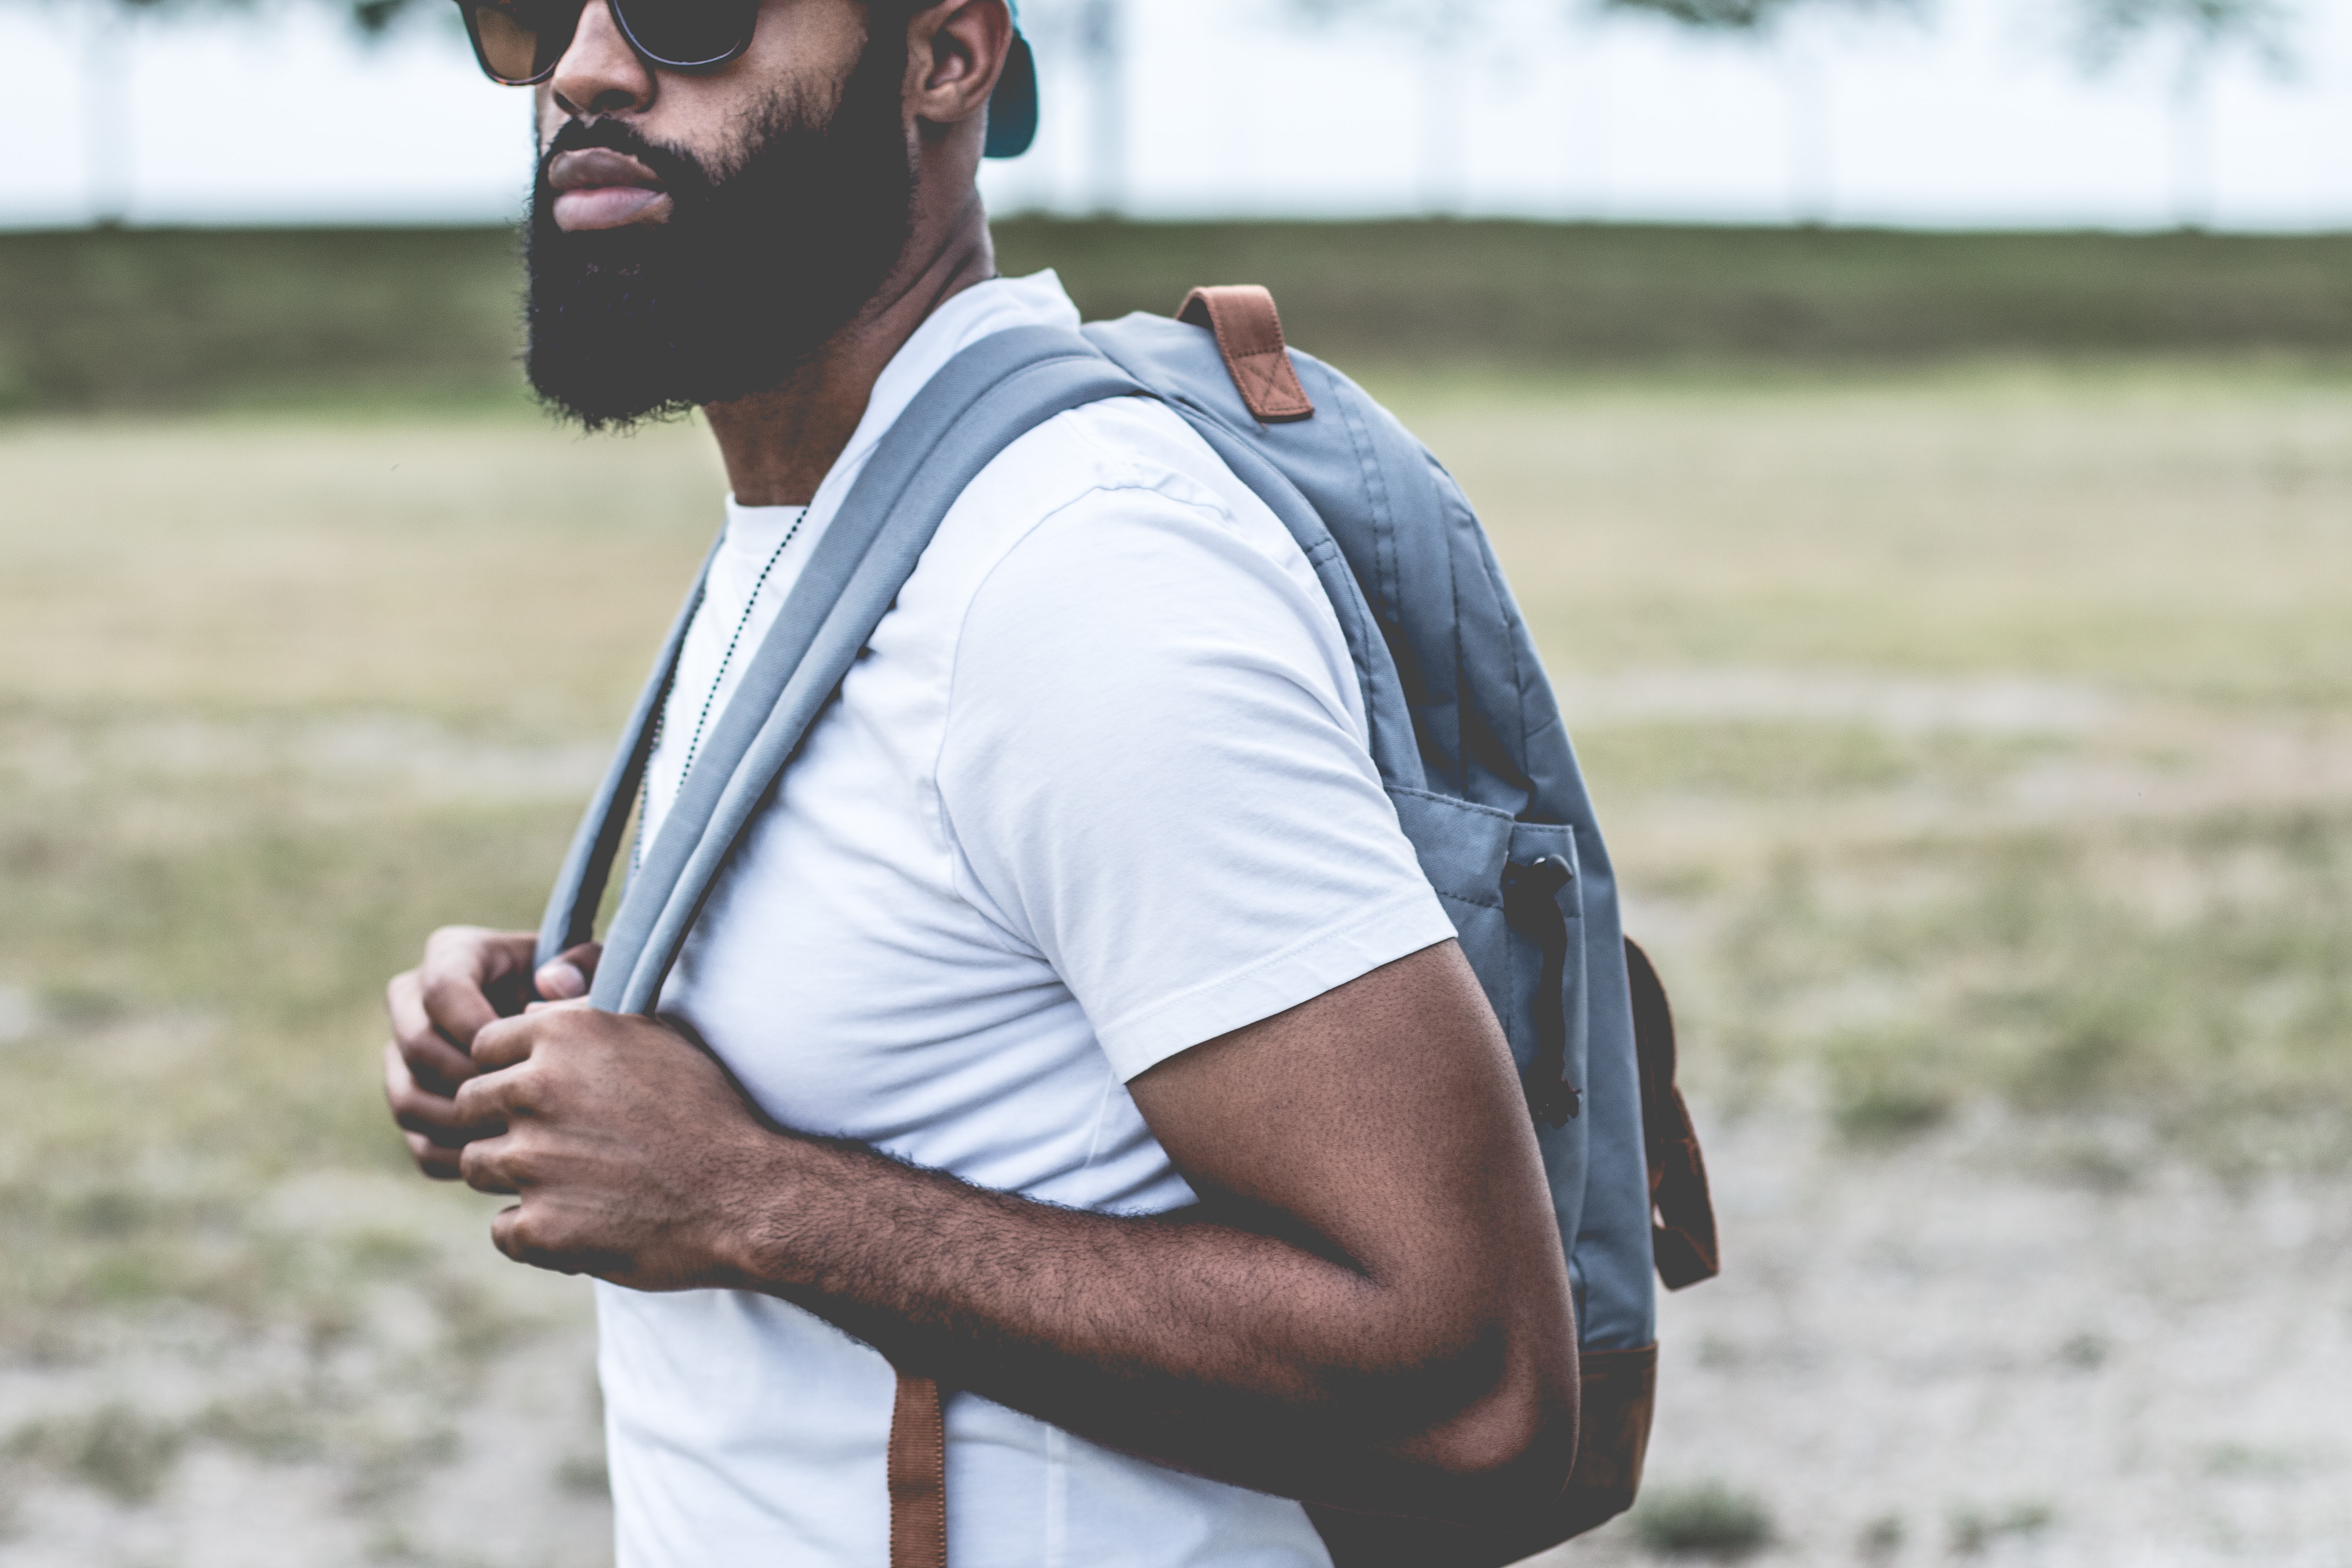 Man with a beard and sunglasses wearing a backpack outside